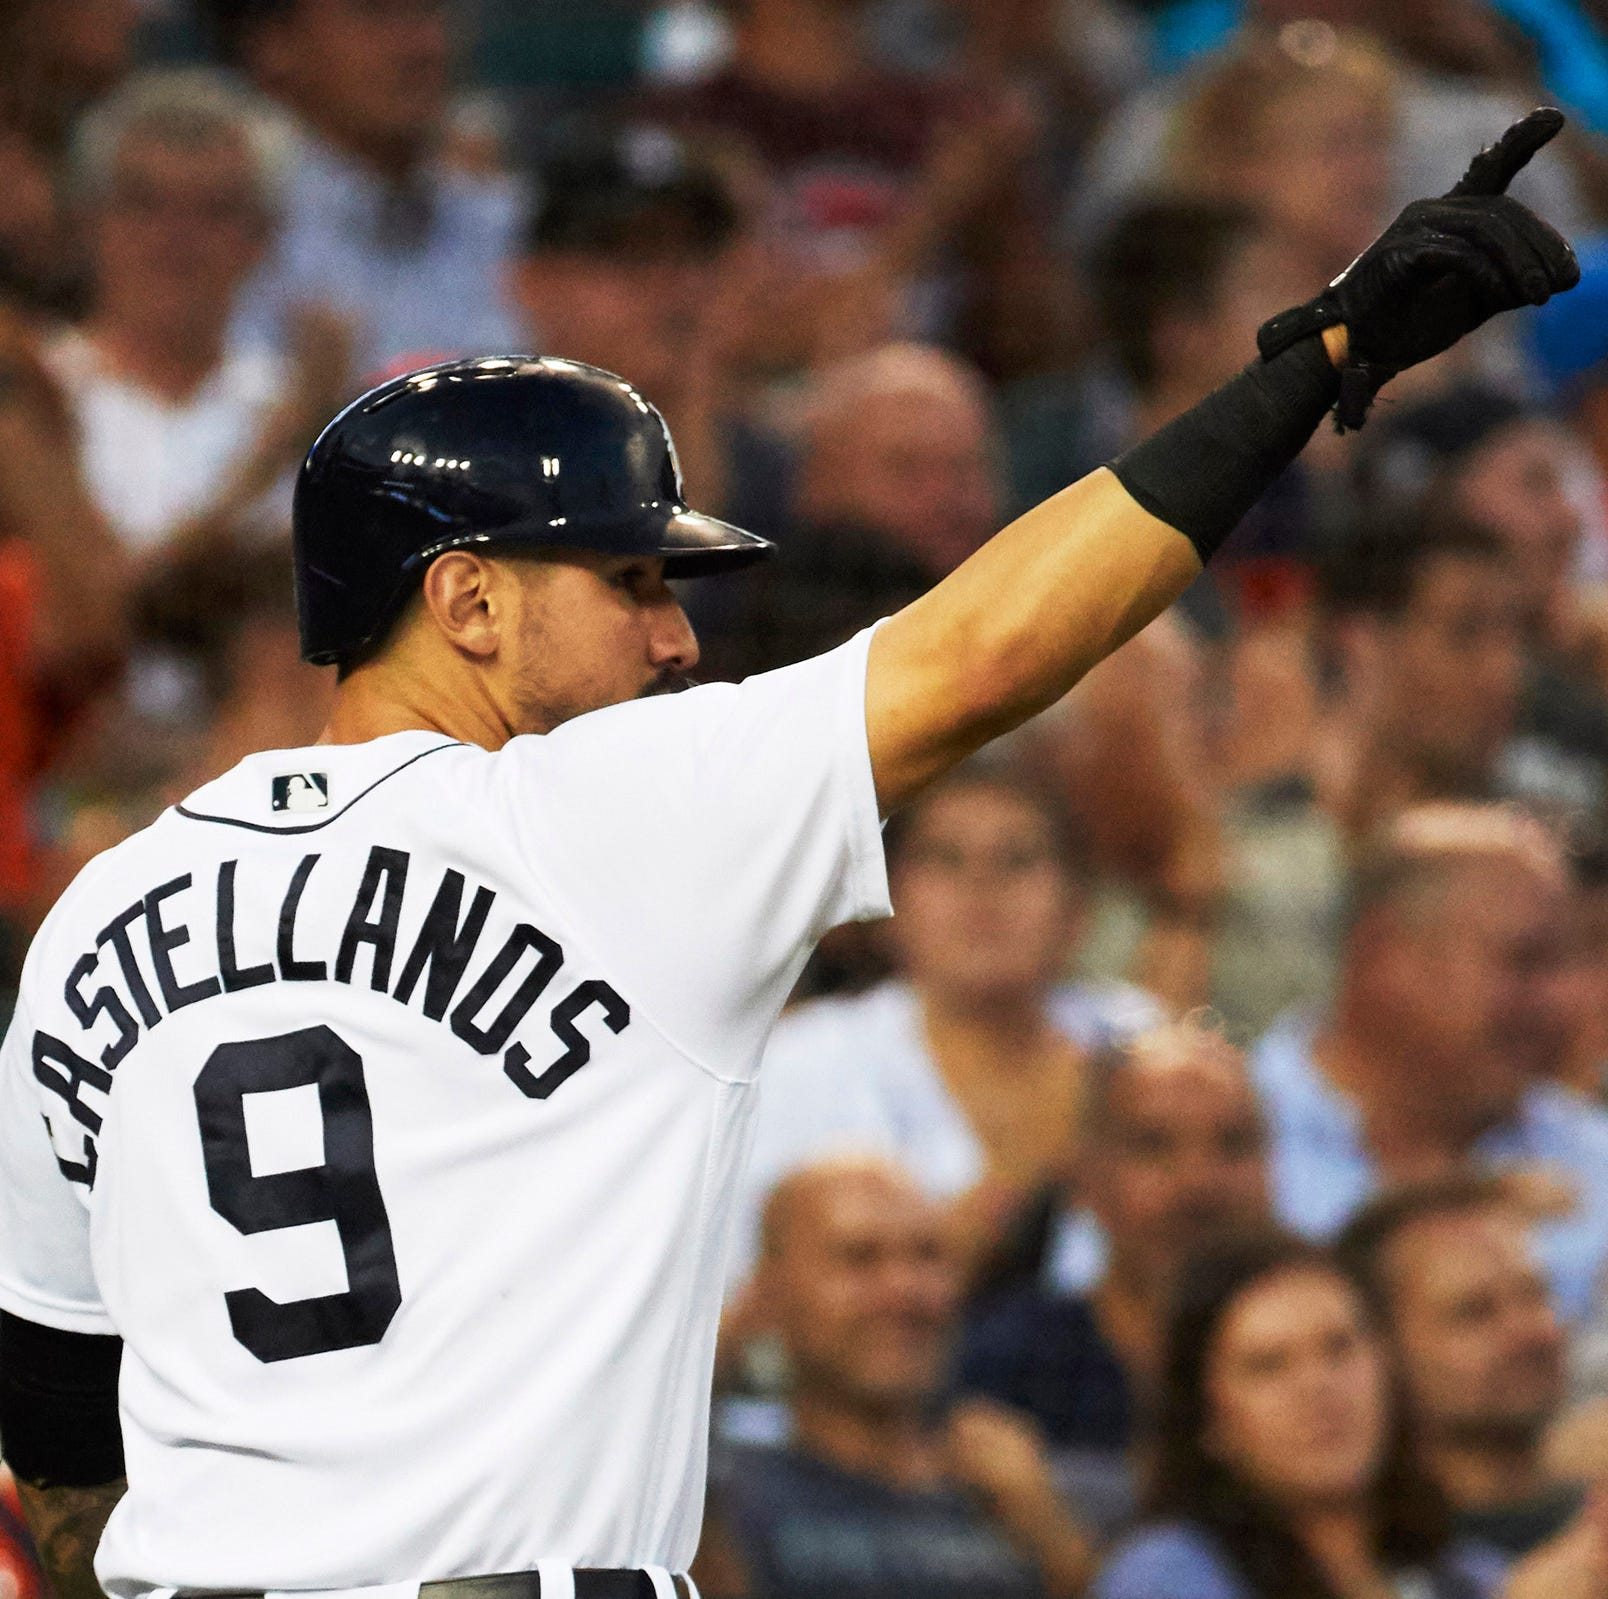 Nicholas Castellanos (5 hits, RBIs), Detroit Tigers top White Sox, 9-5